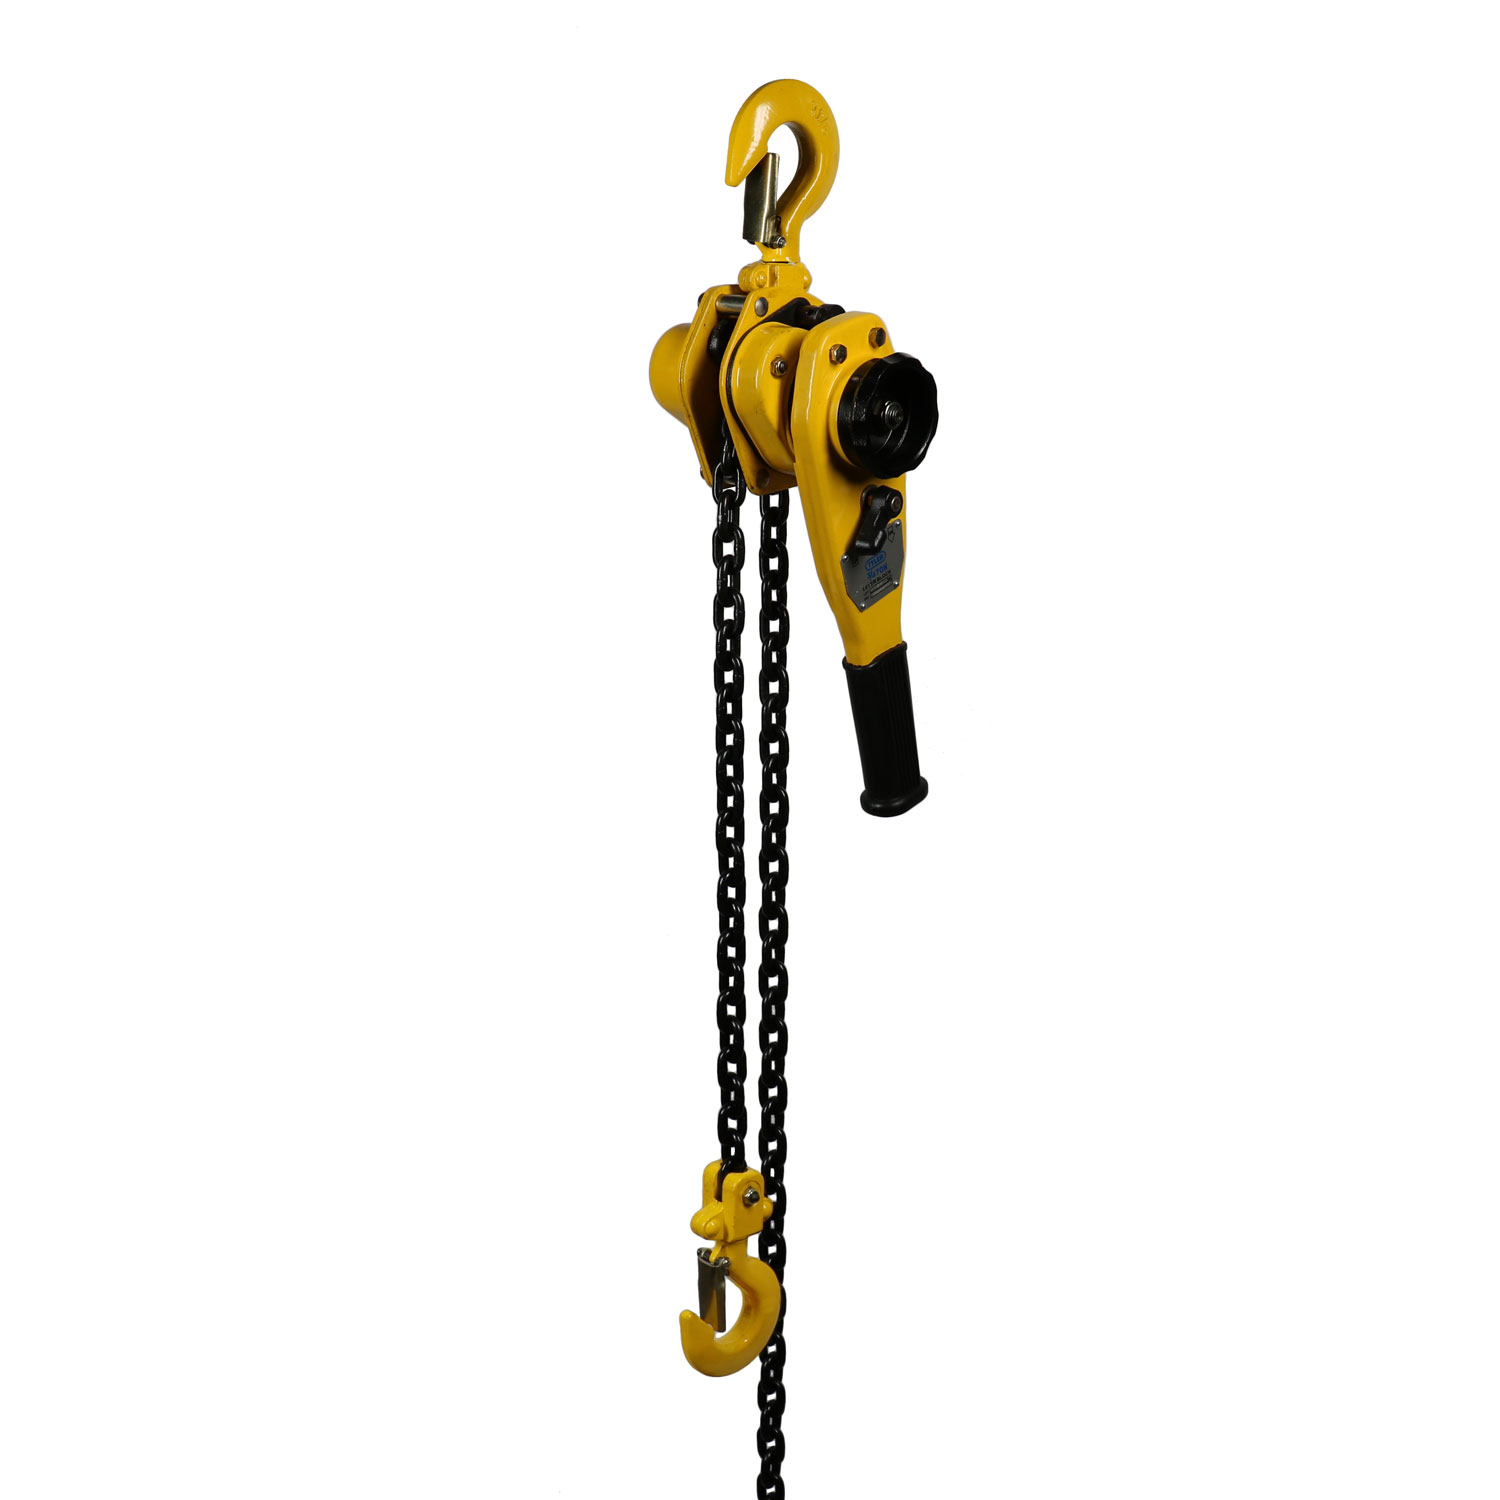 0.75 ton X 20 Foot Lift, Tyler Tool Lever Chain Hoist Image 1